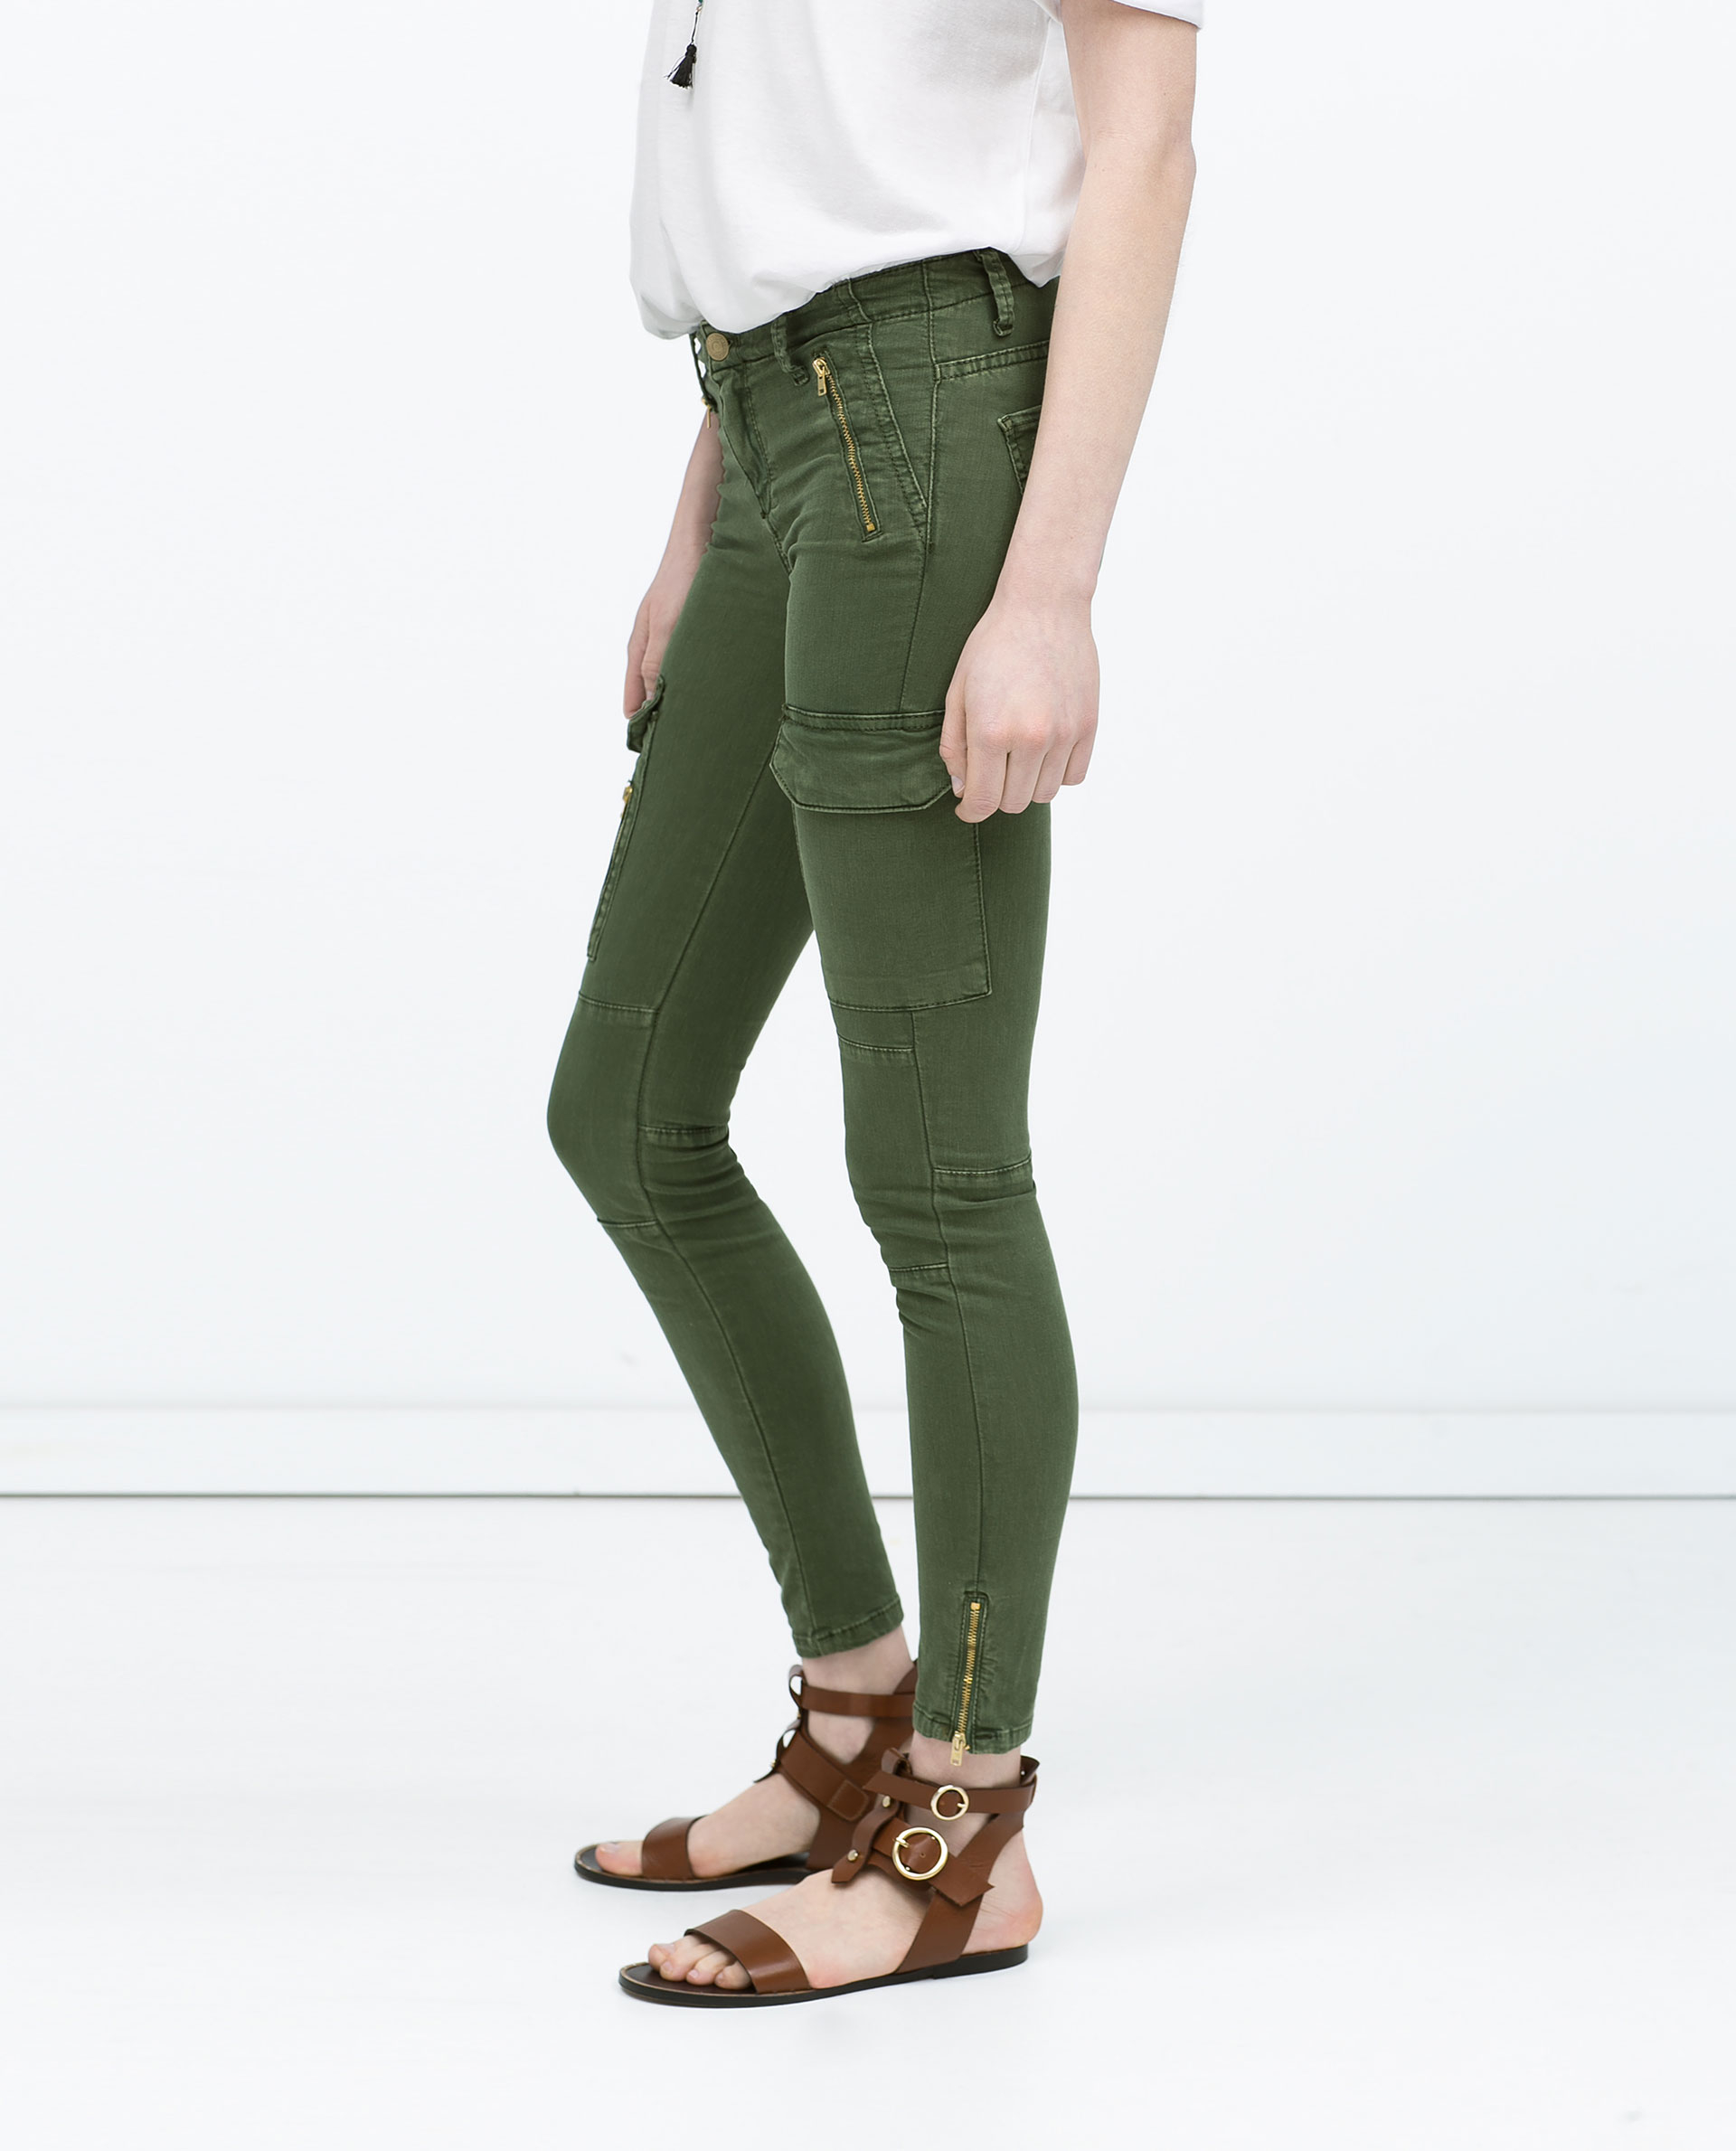 Excellent Law360, New York May 12, 2015, 542 PM EDT  Imports LLC Alleging That A Recent Mark Used By Zara Comes Dangerously Close To Its Original Seychelles Lanced Into New Yorkbased Zara For Use Of A Clothing Mark Starting In